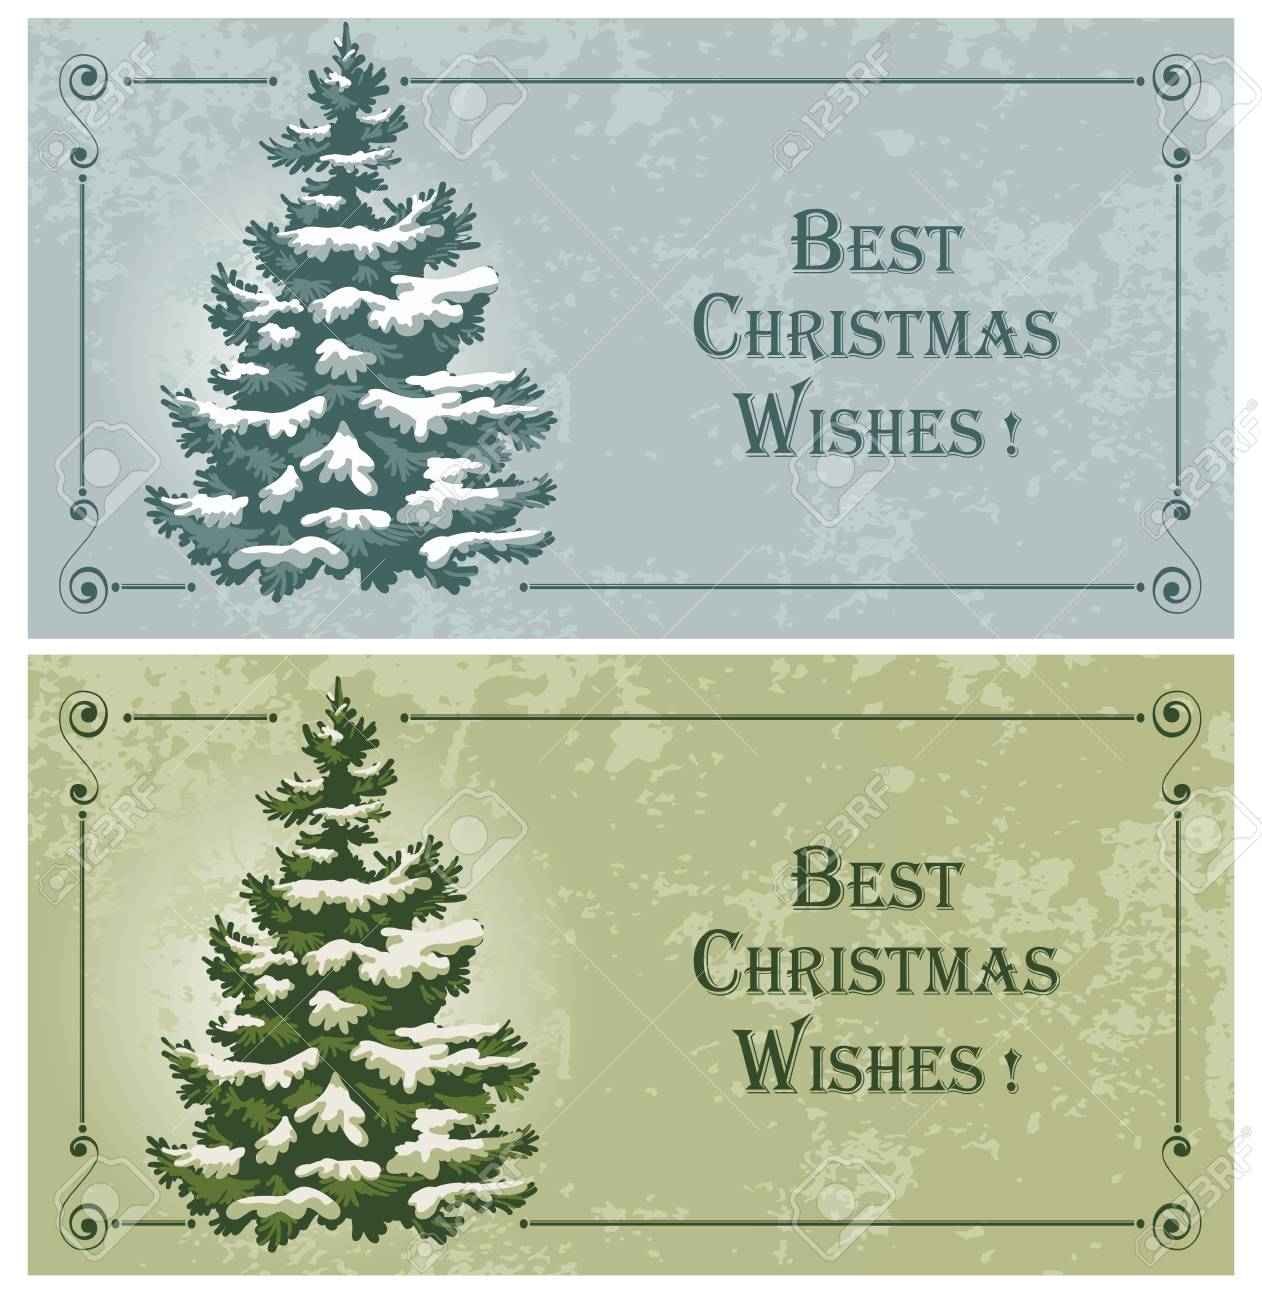 Vintage Christmas Cards With Spruce In The Snow Royalty Free ...